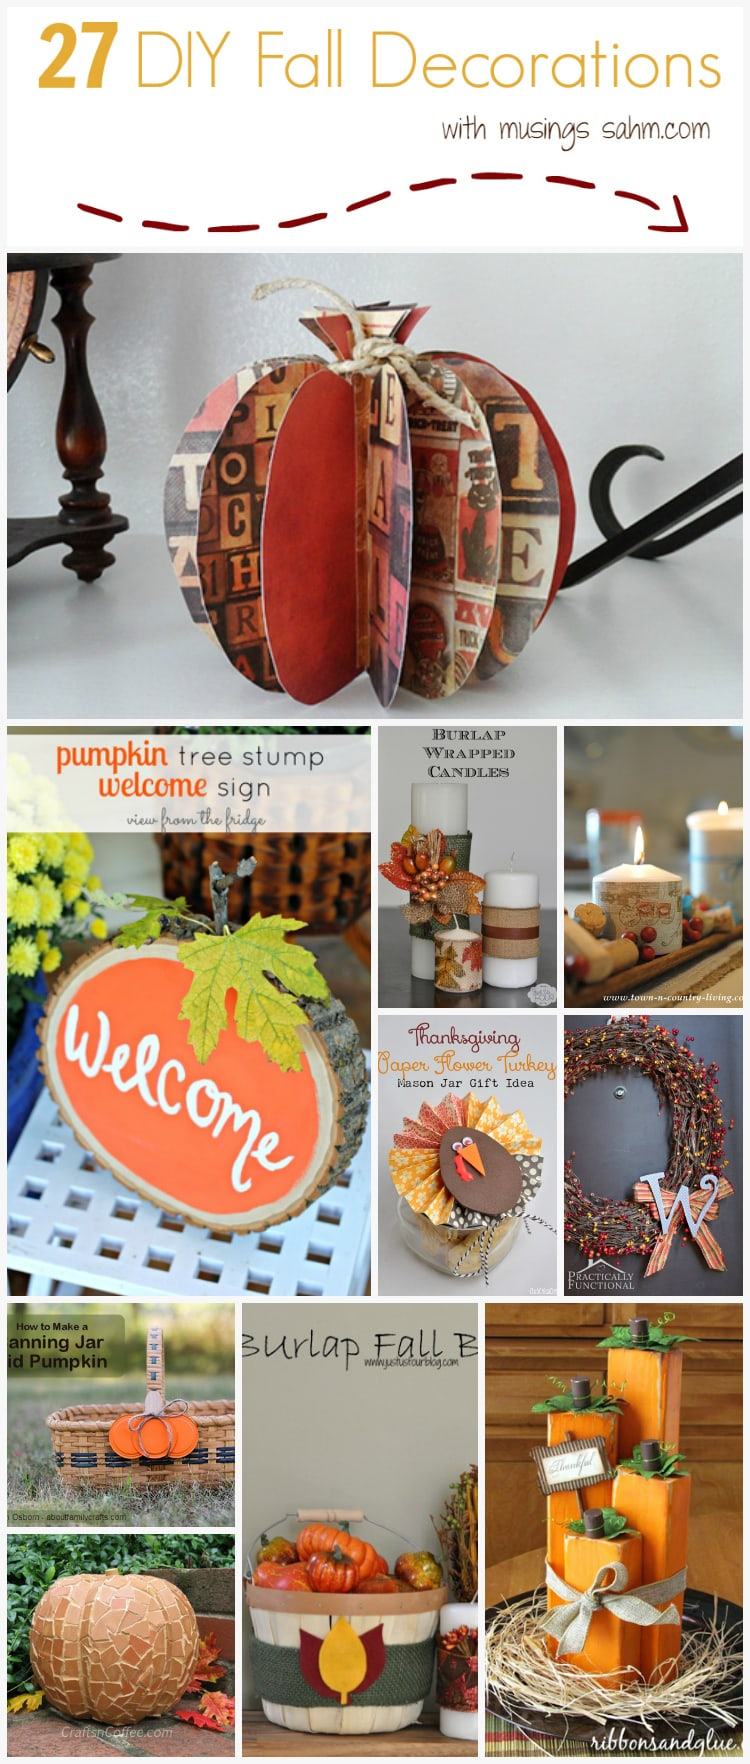 27 diy fall decorations to make for your home you 39 ll love for Homemade fall decorations for home